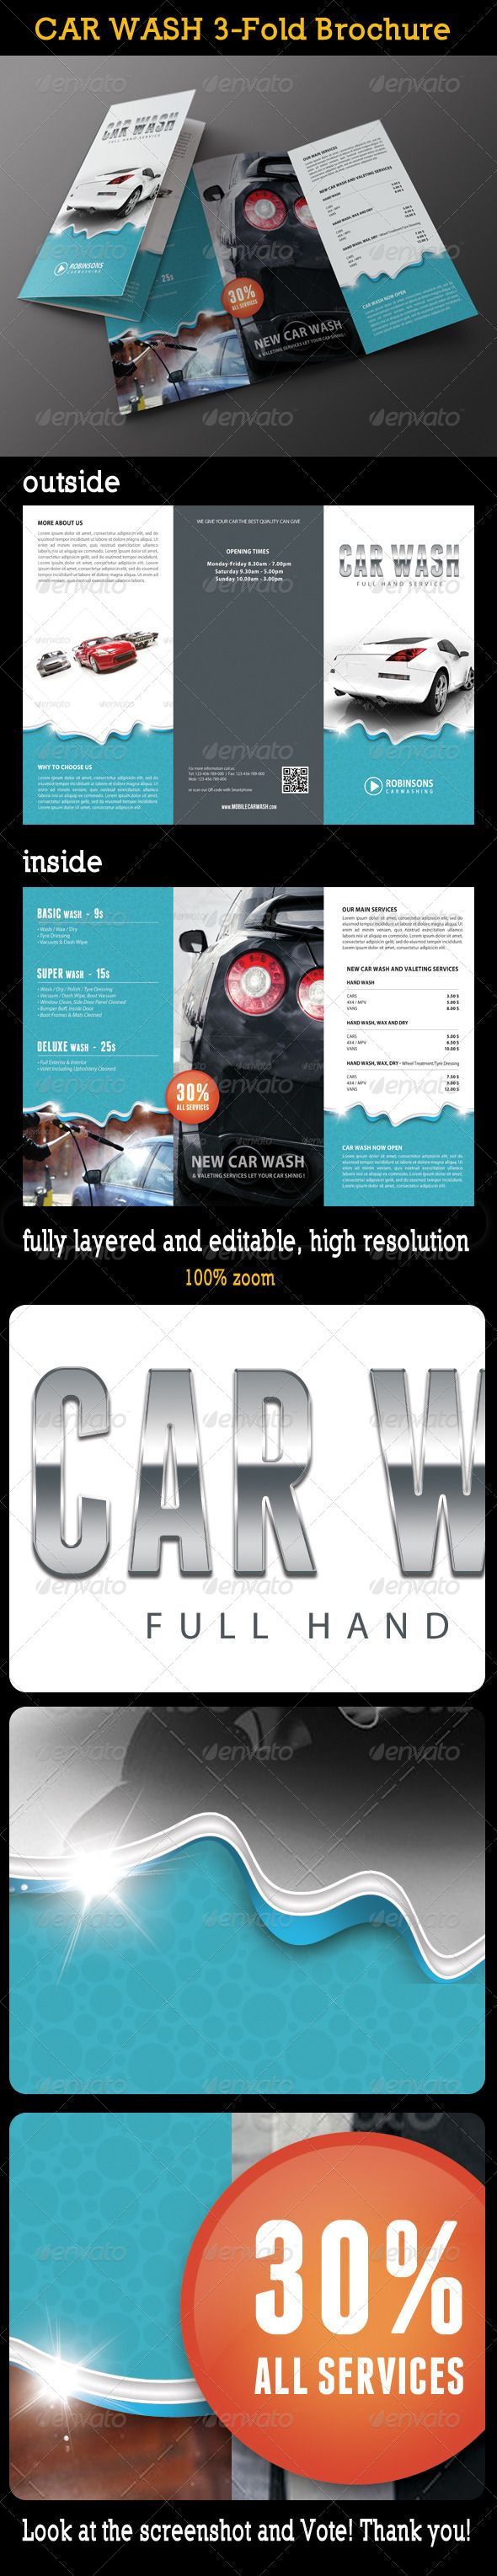 Car Wash & Auto Detailing Services or Car wash Equipment. Highly editable PSD brochure template, very easily customise to make it your own in seconds! http://franchise.avenue.eu.com/